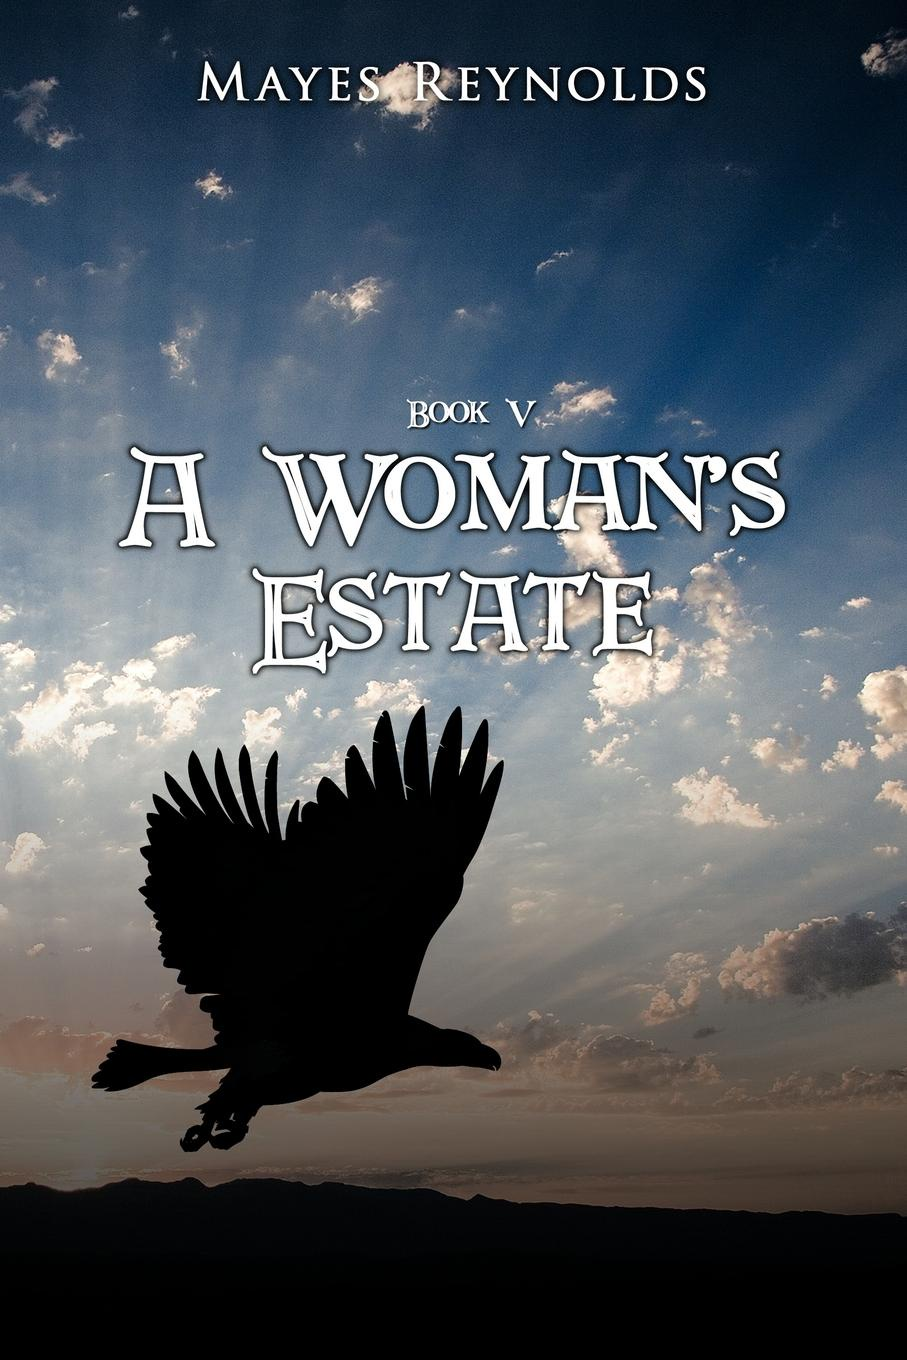 Mayes Reynolds A Woman's Estate. Book 5